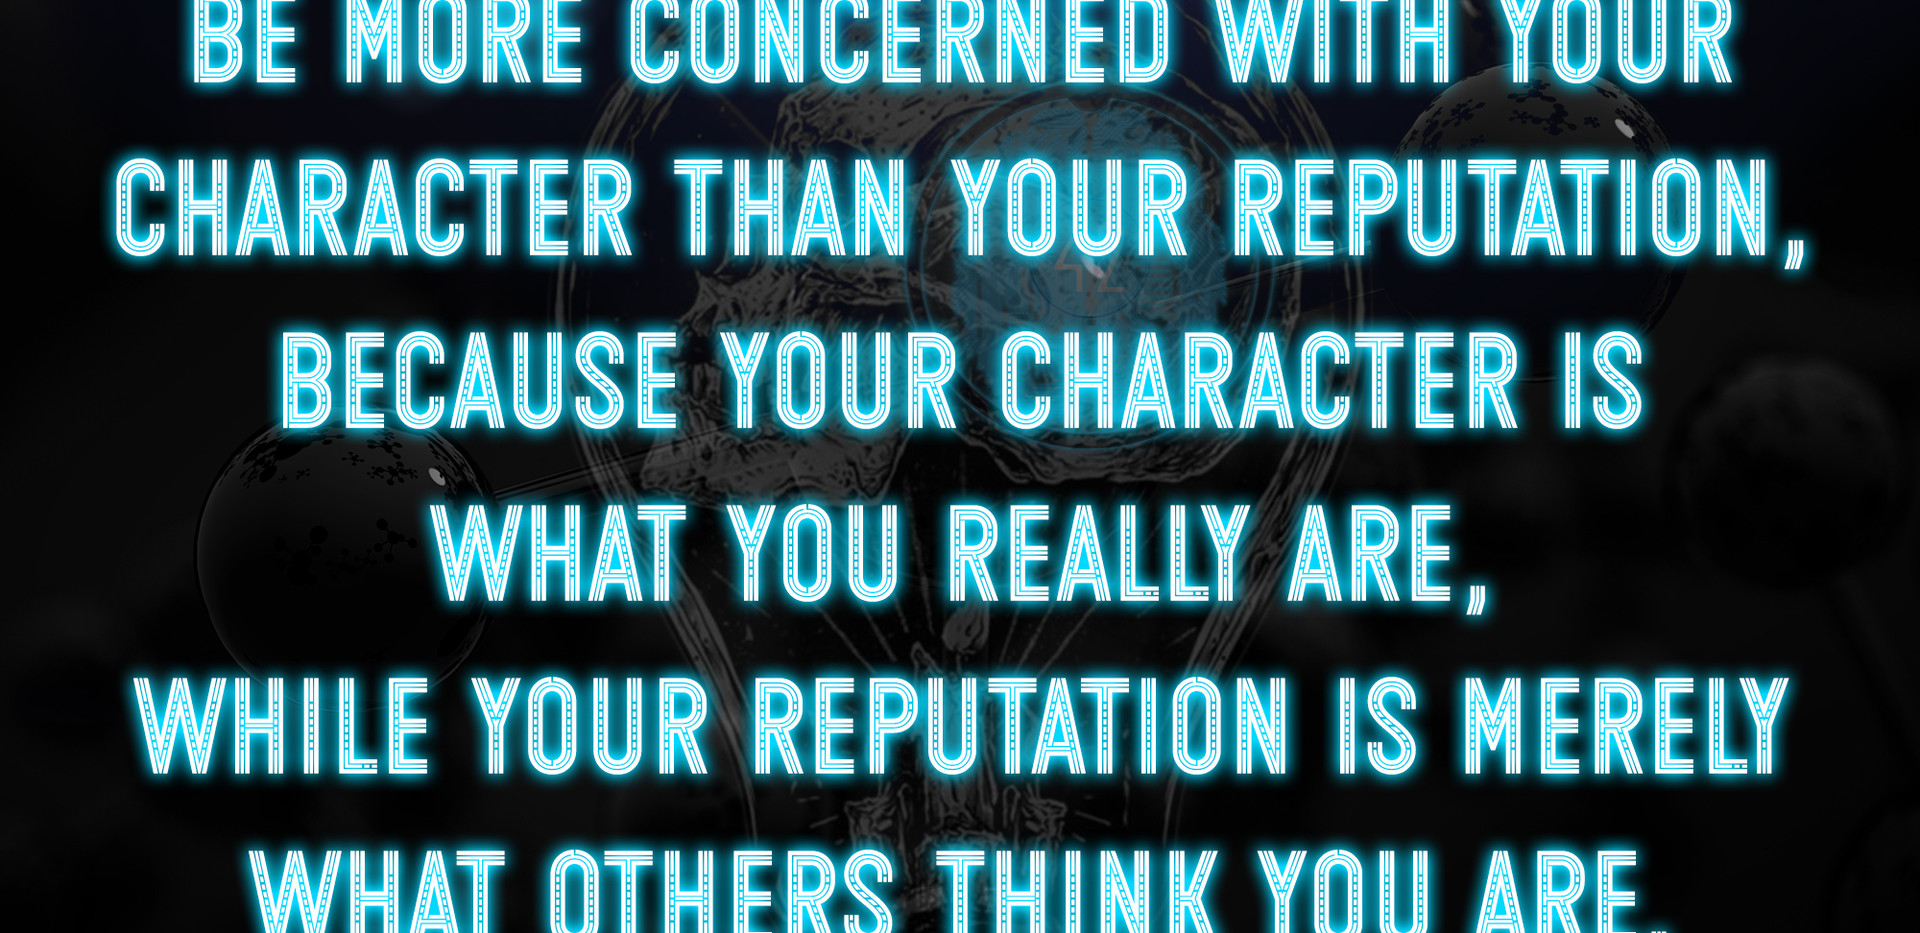 Think about that-your character.jpg